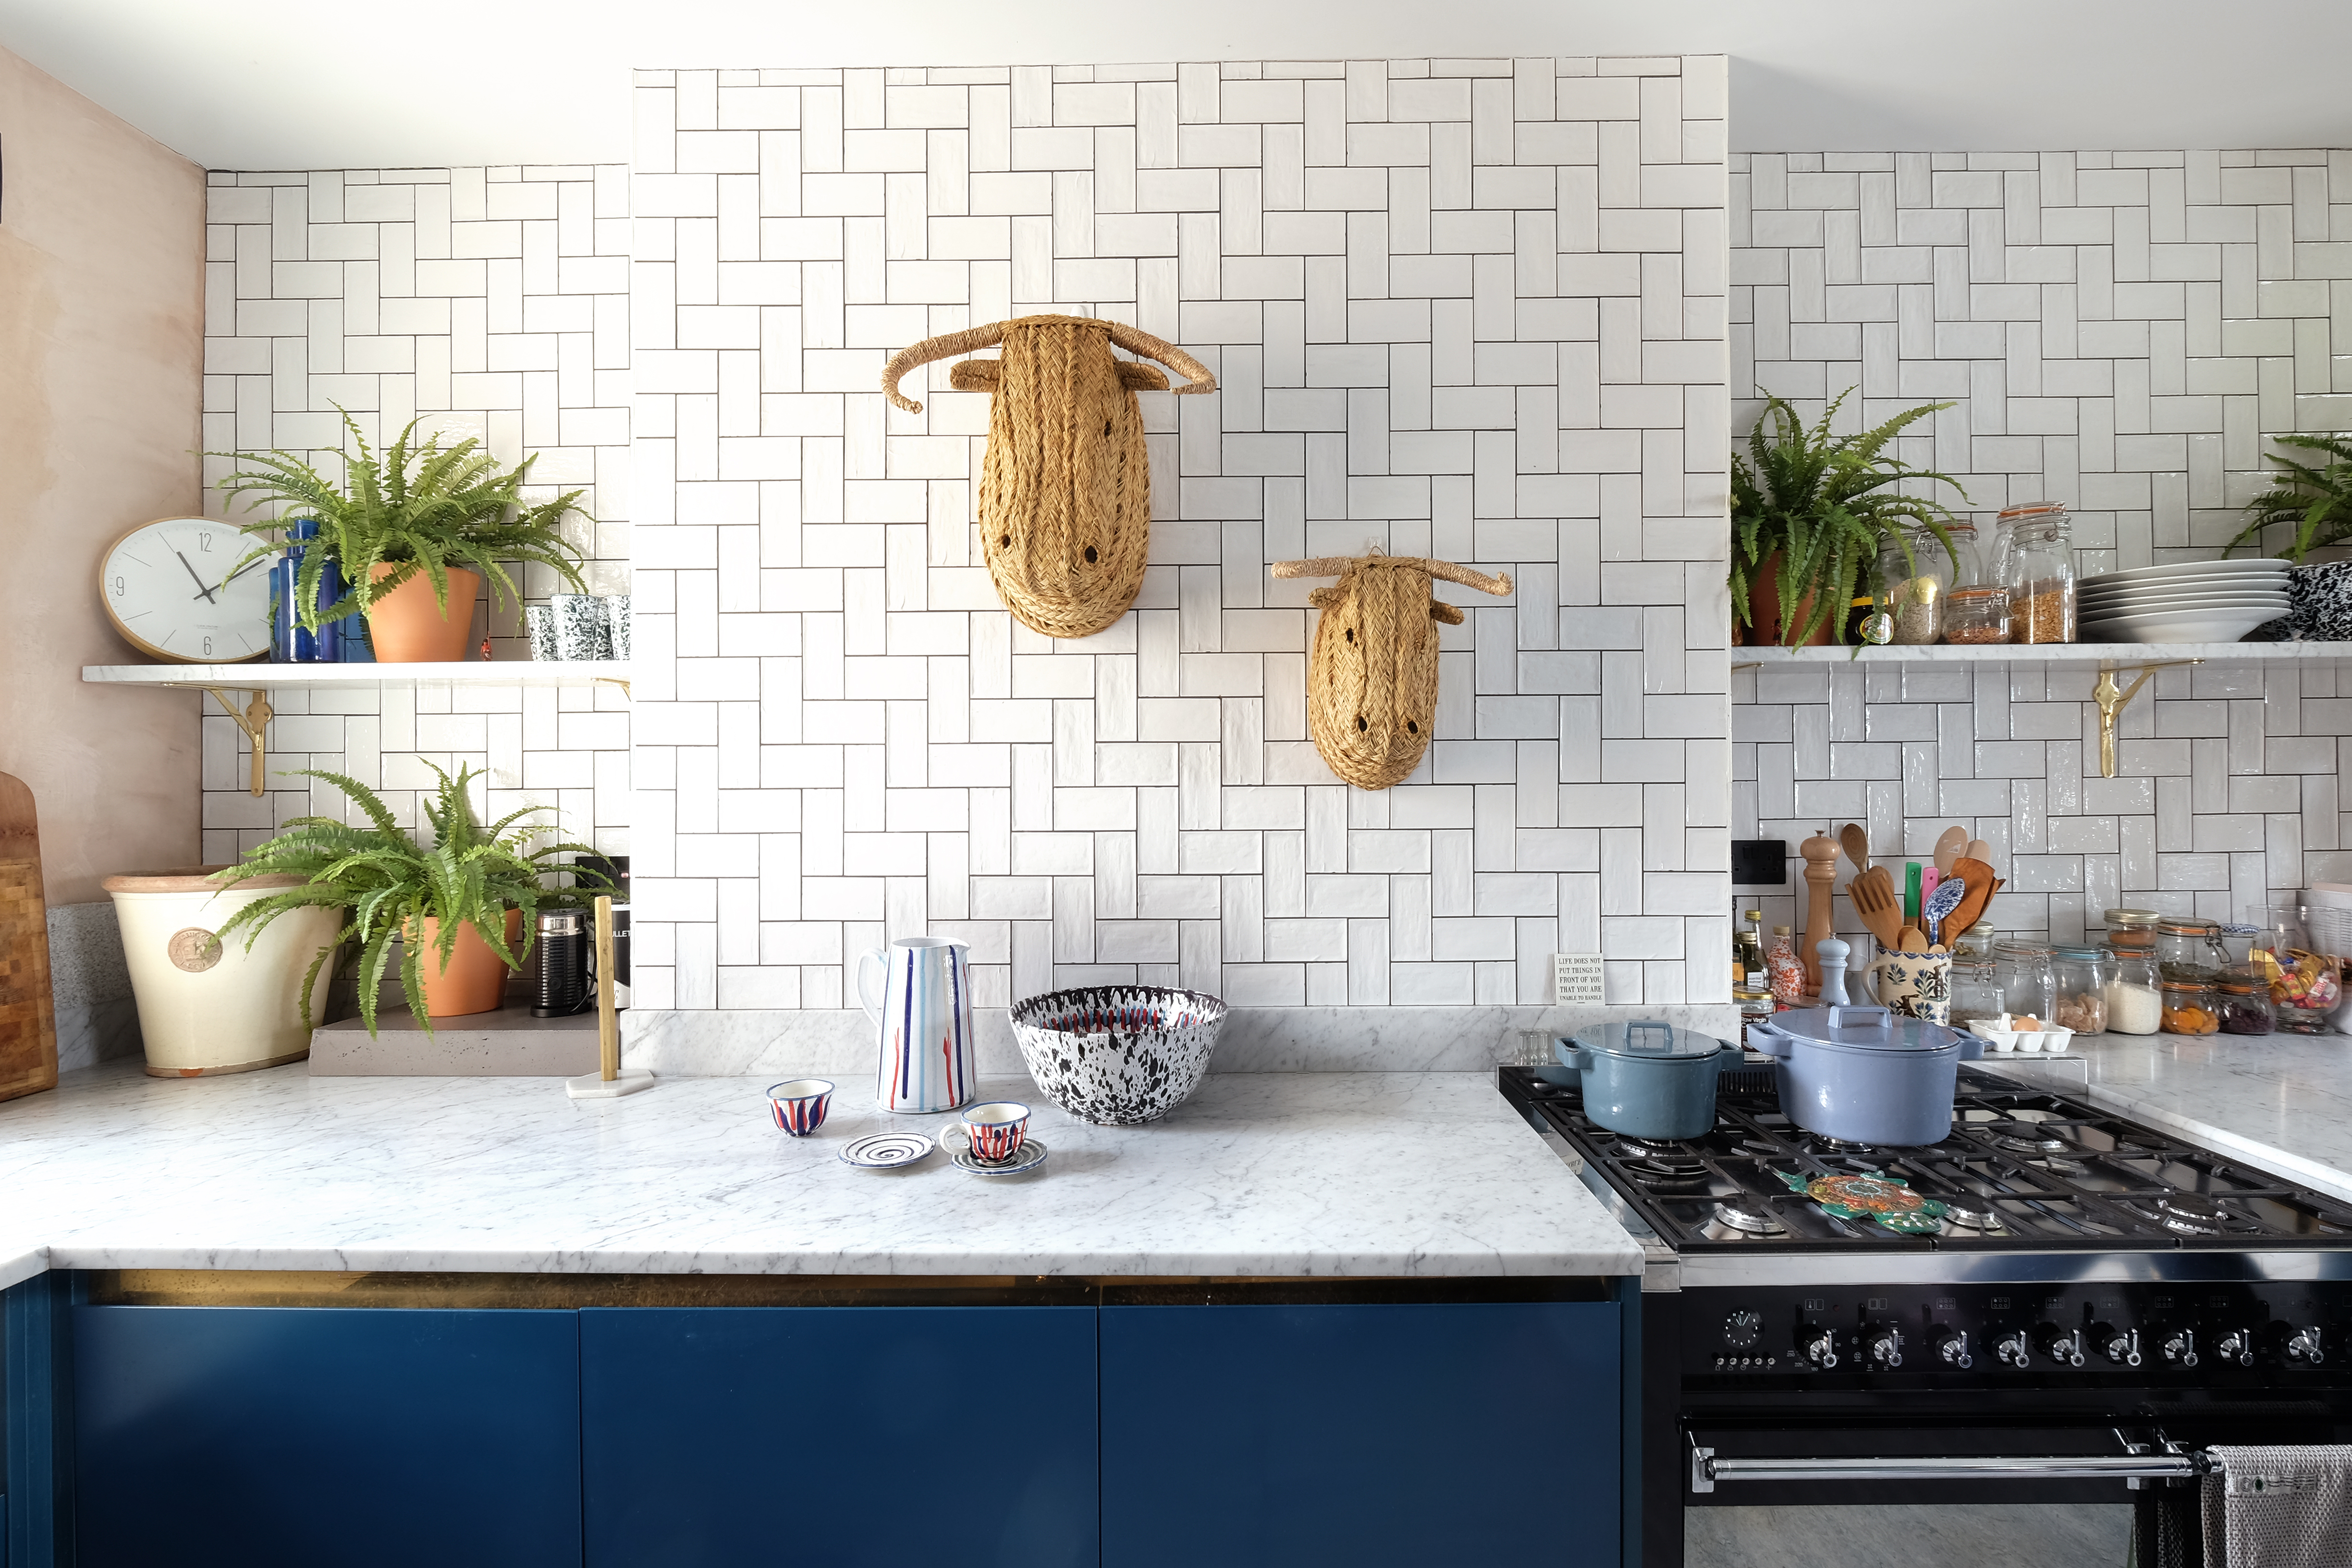 20 Backsplash Ideas to Inspire You | Apartment Therapy